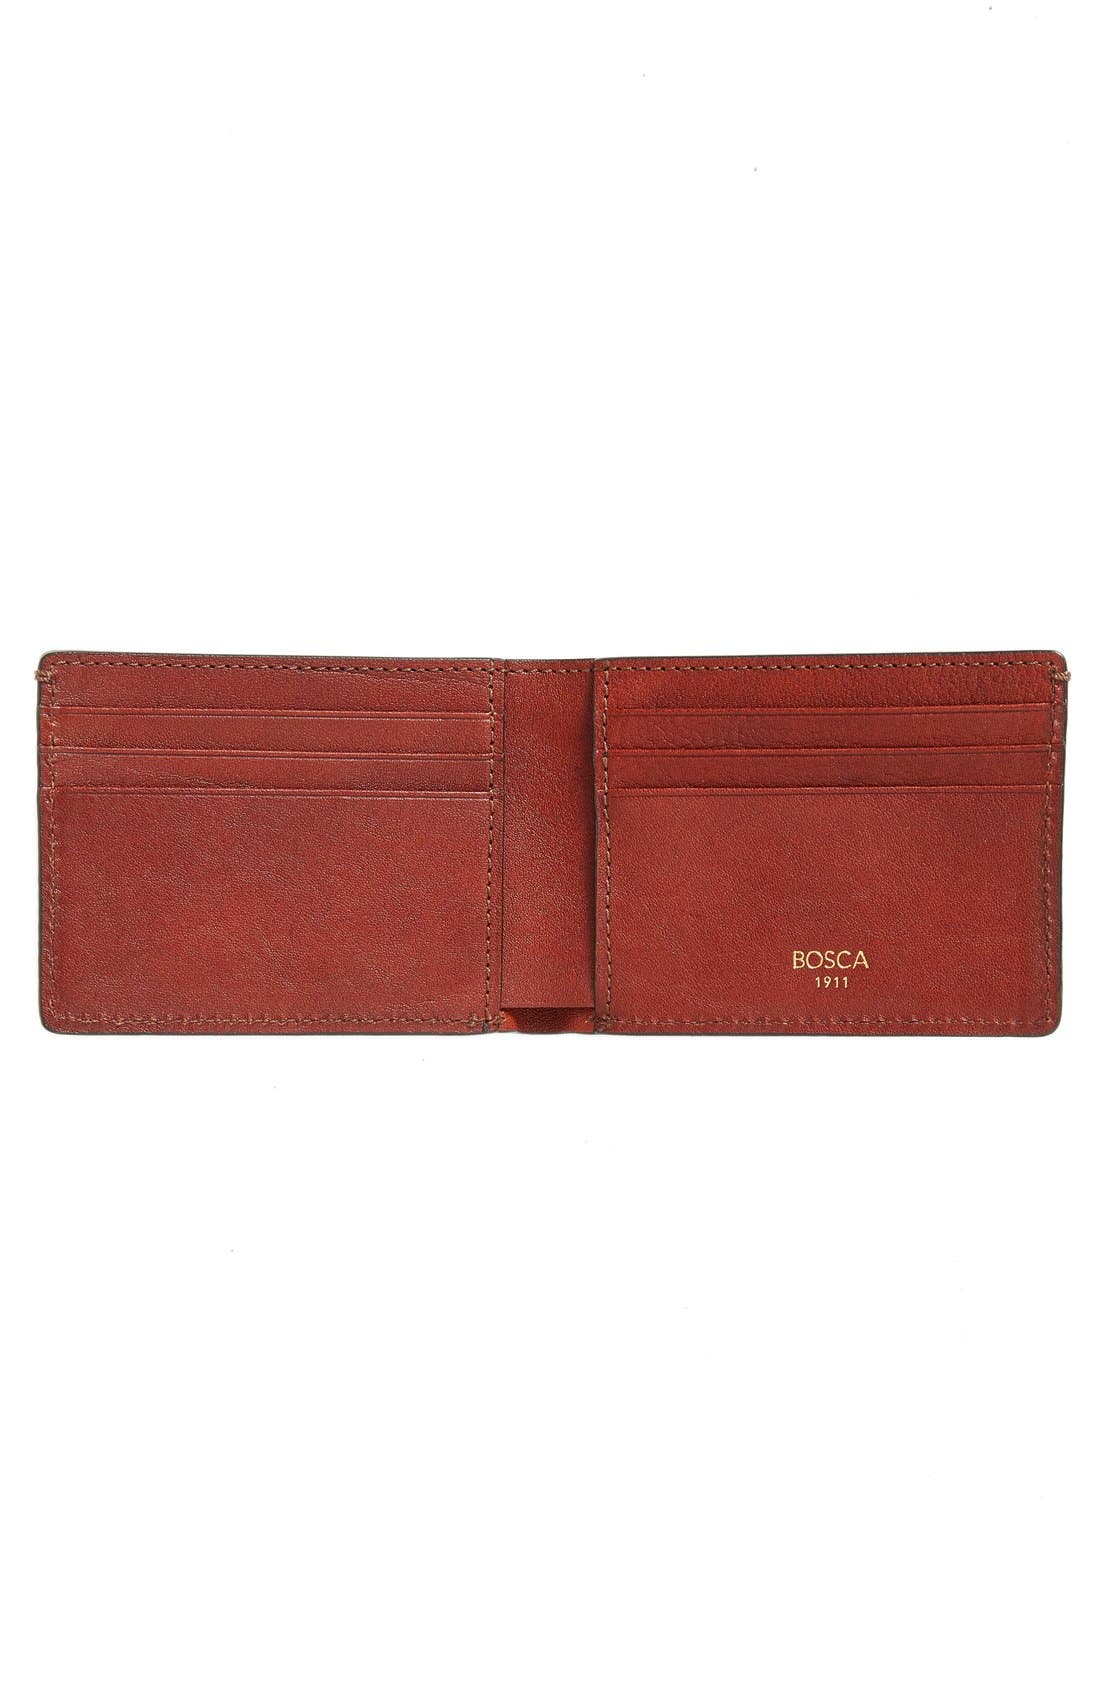 Leather Bifold Wallet,                             Alternate thumbnail 2, color,                             200